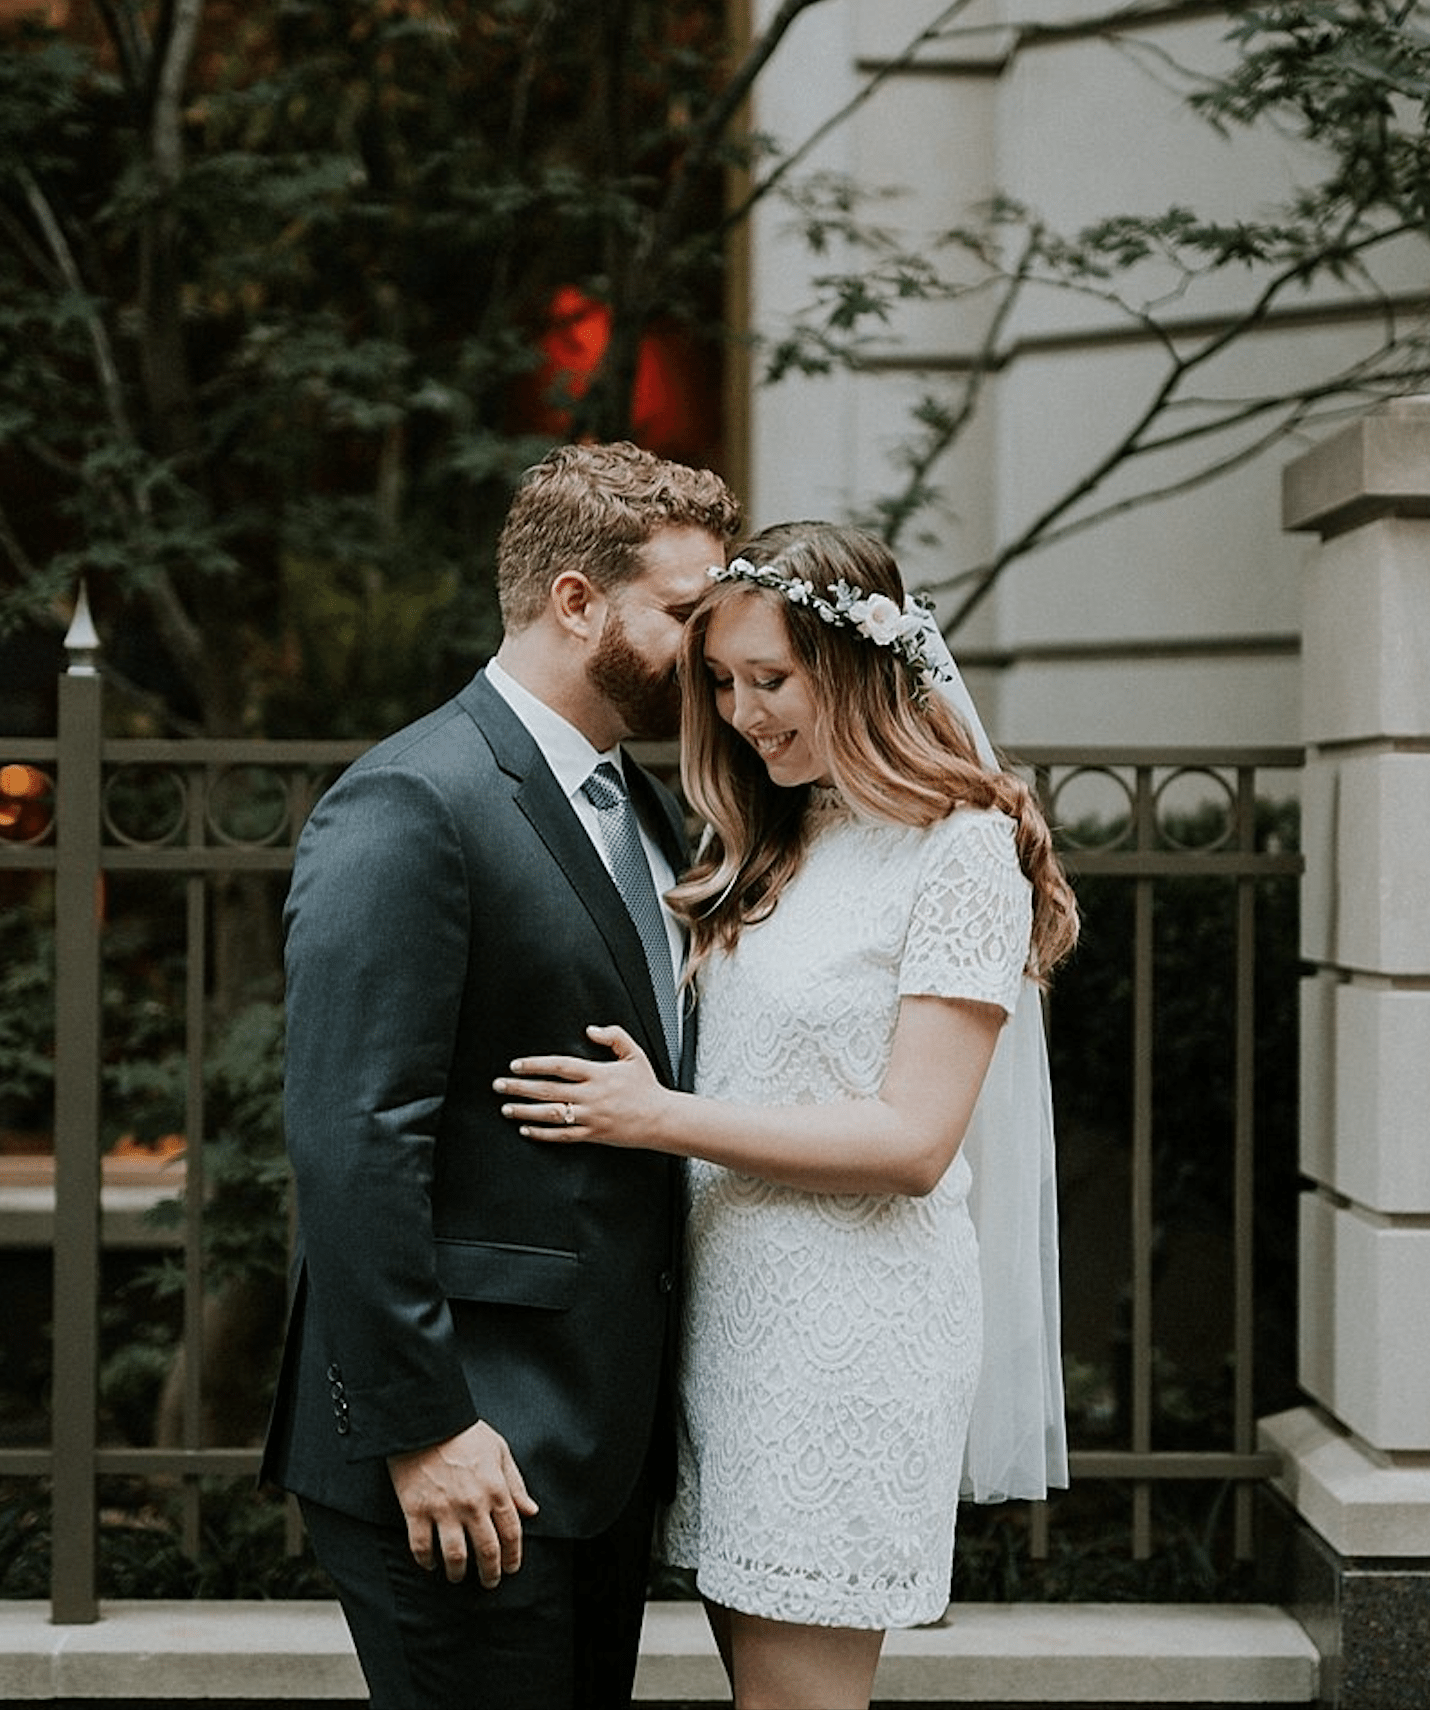 A Practical Wedding Real Weddings: We Ditched The Veil, Added A Party Bus, And Had The Best